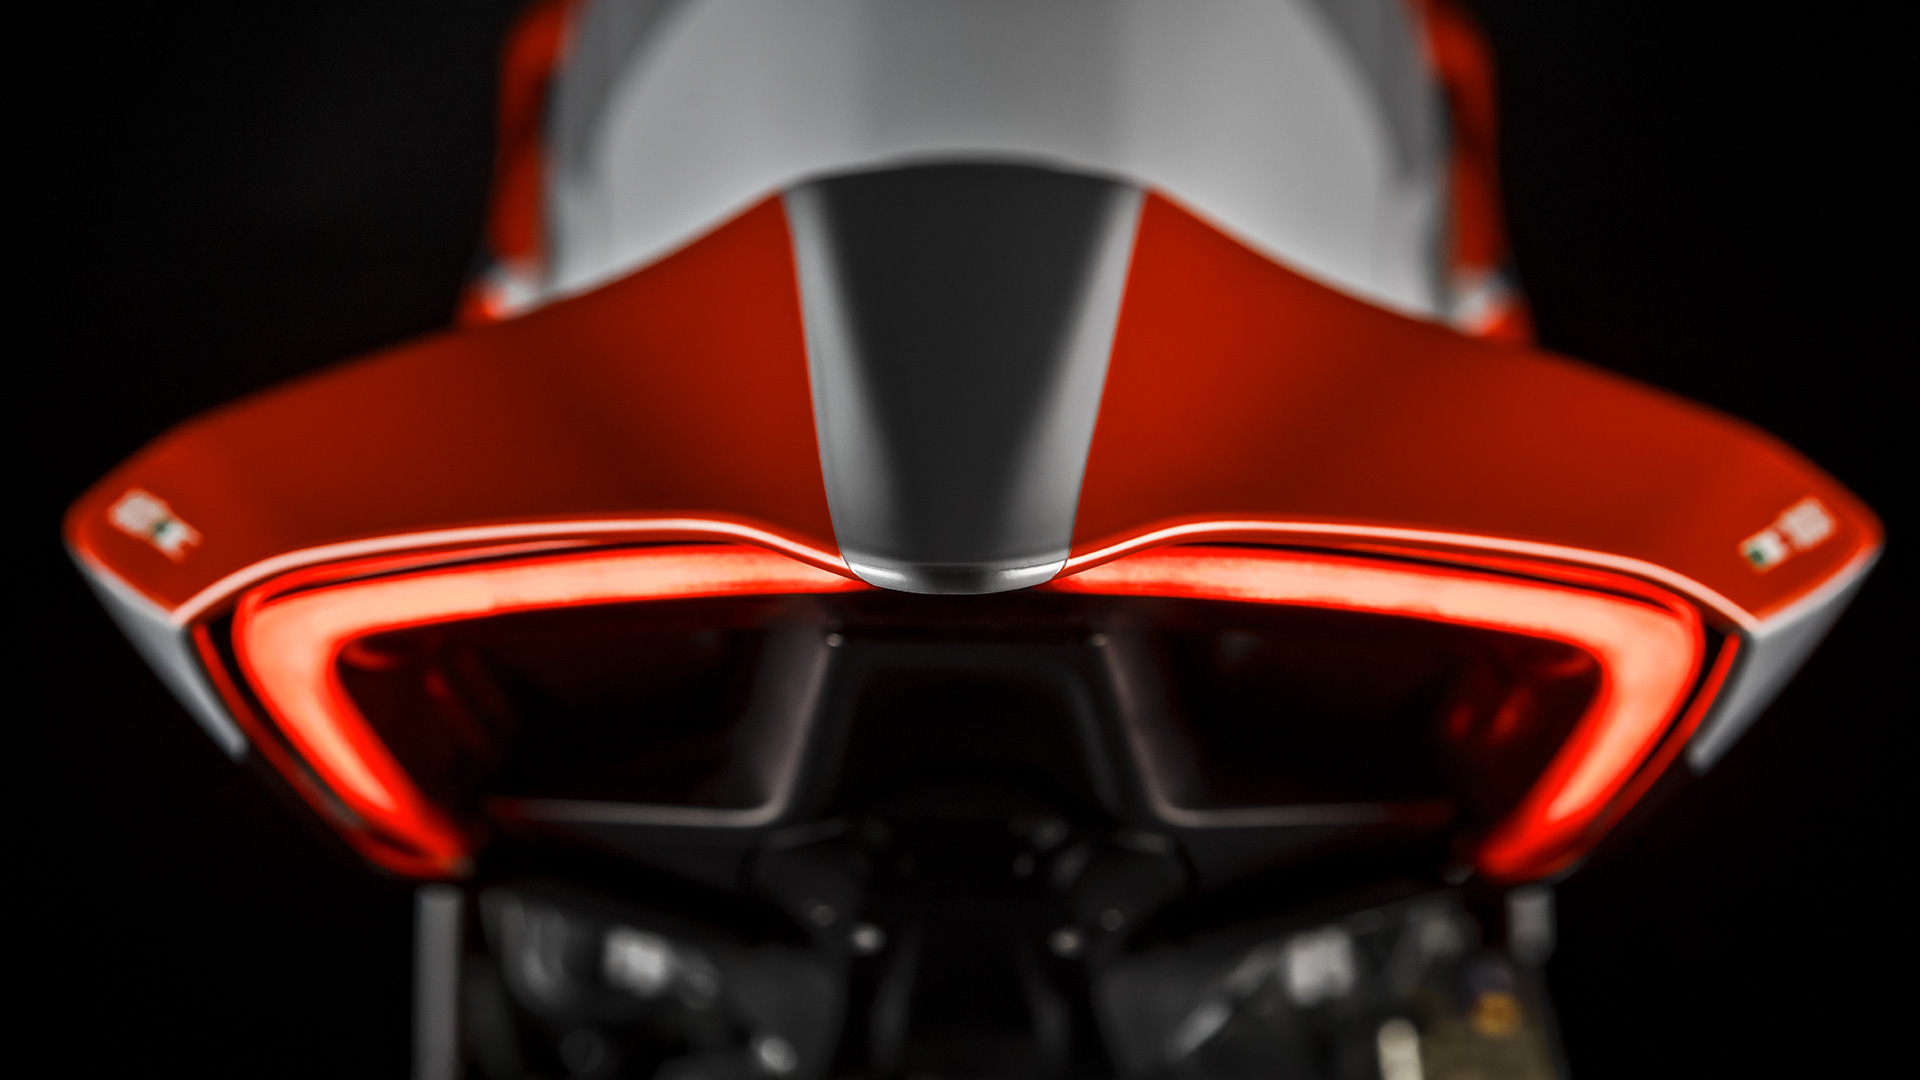 Panigale-V4S-Corse-MY19-15-Gallery-1920x1080